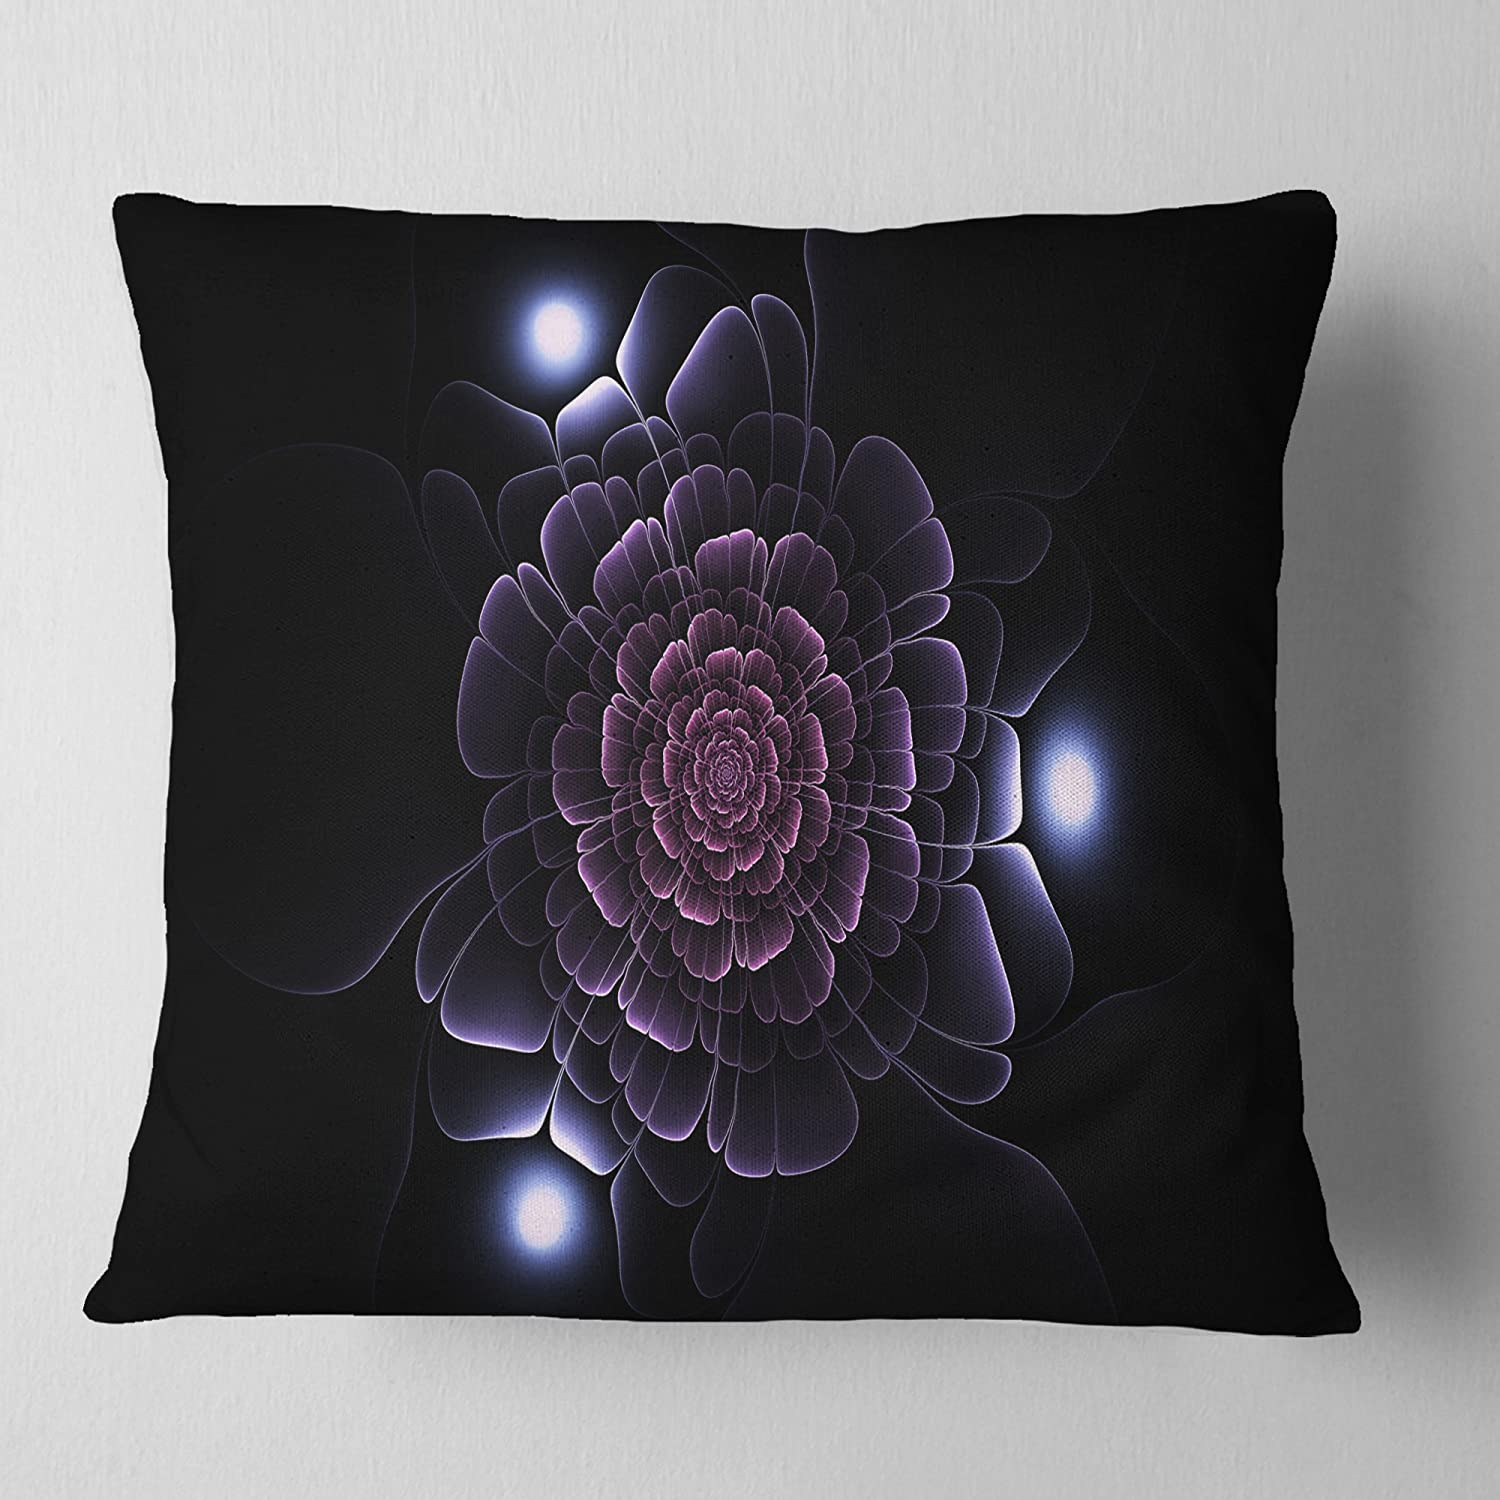 Designart CU14096-16-16 Purple Fractal Flower on Dark' Floral Cushion Cover for Living Room, Sofa Throw Pillow, 16 in. x 16 in